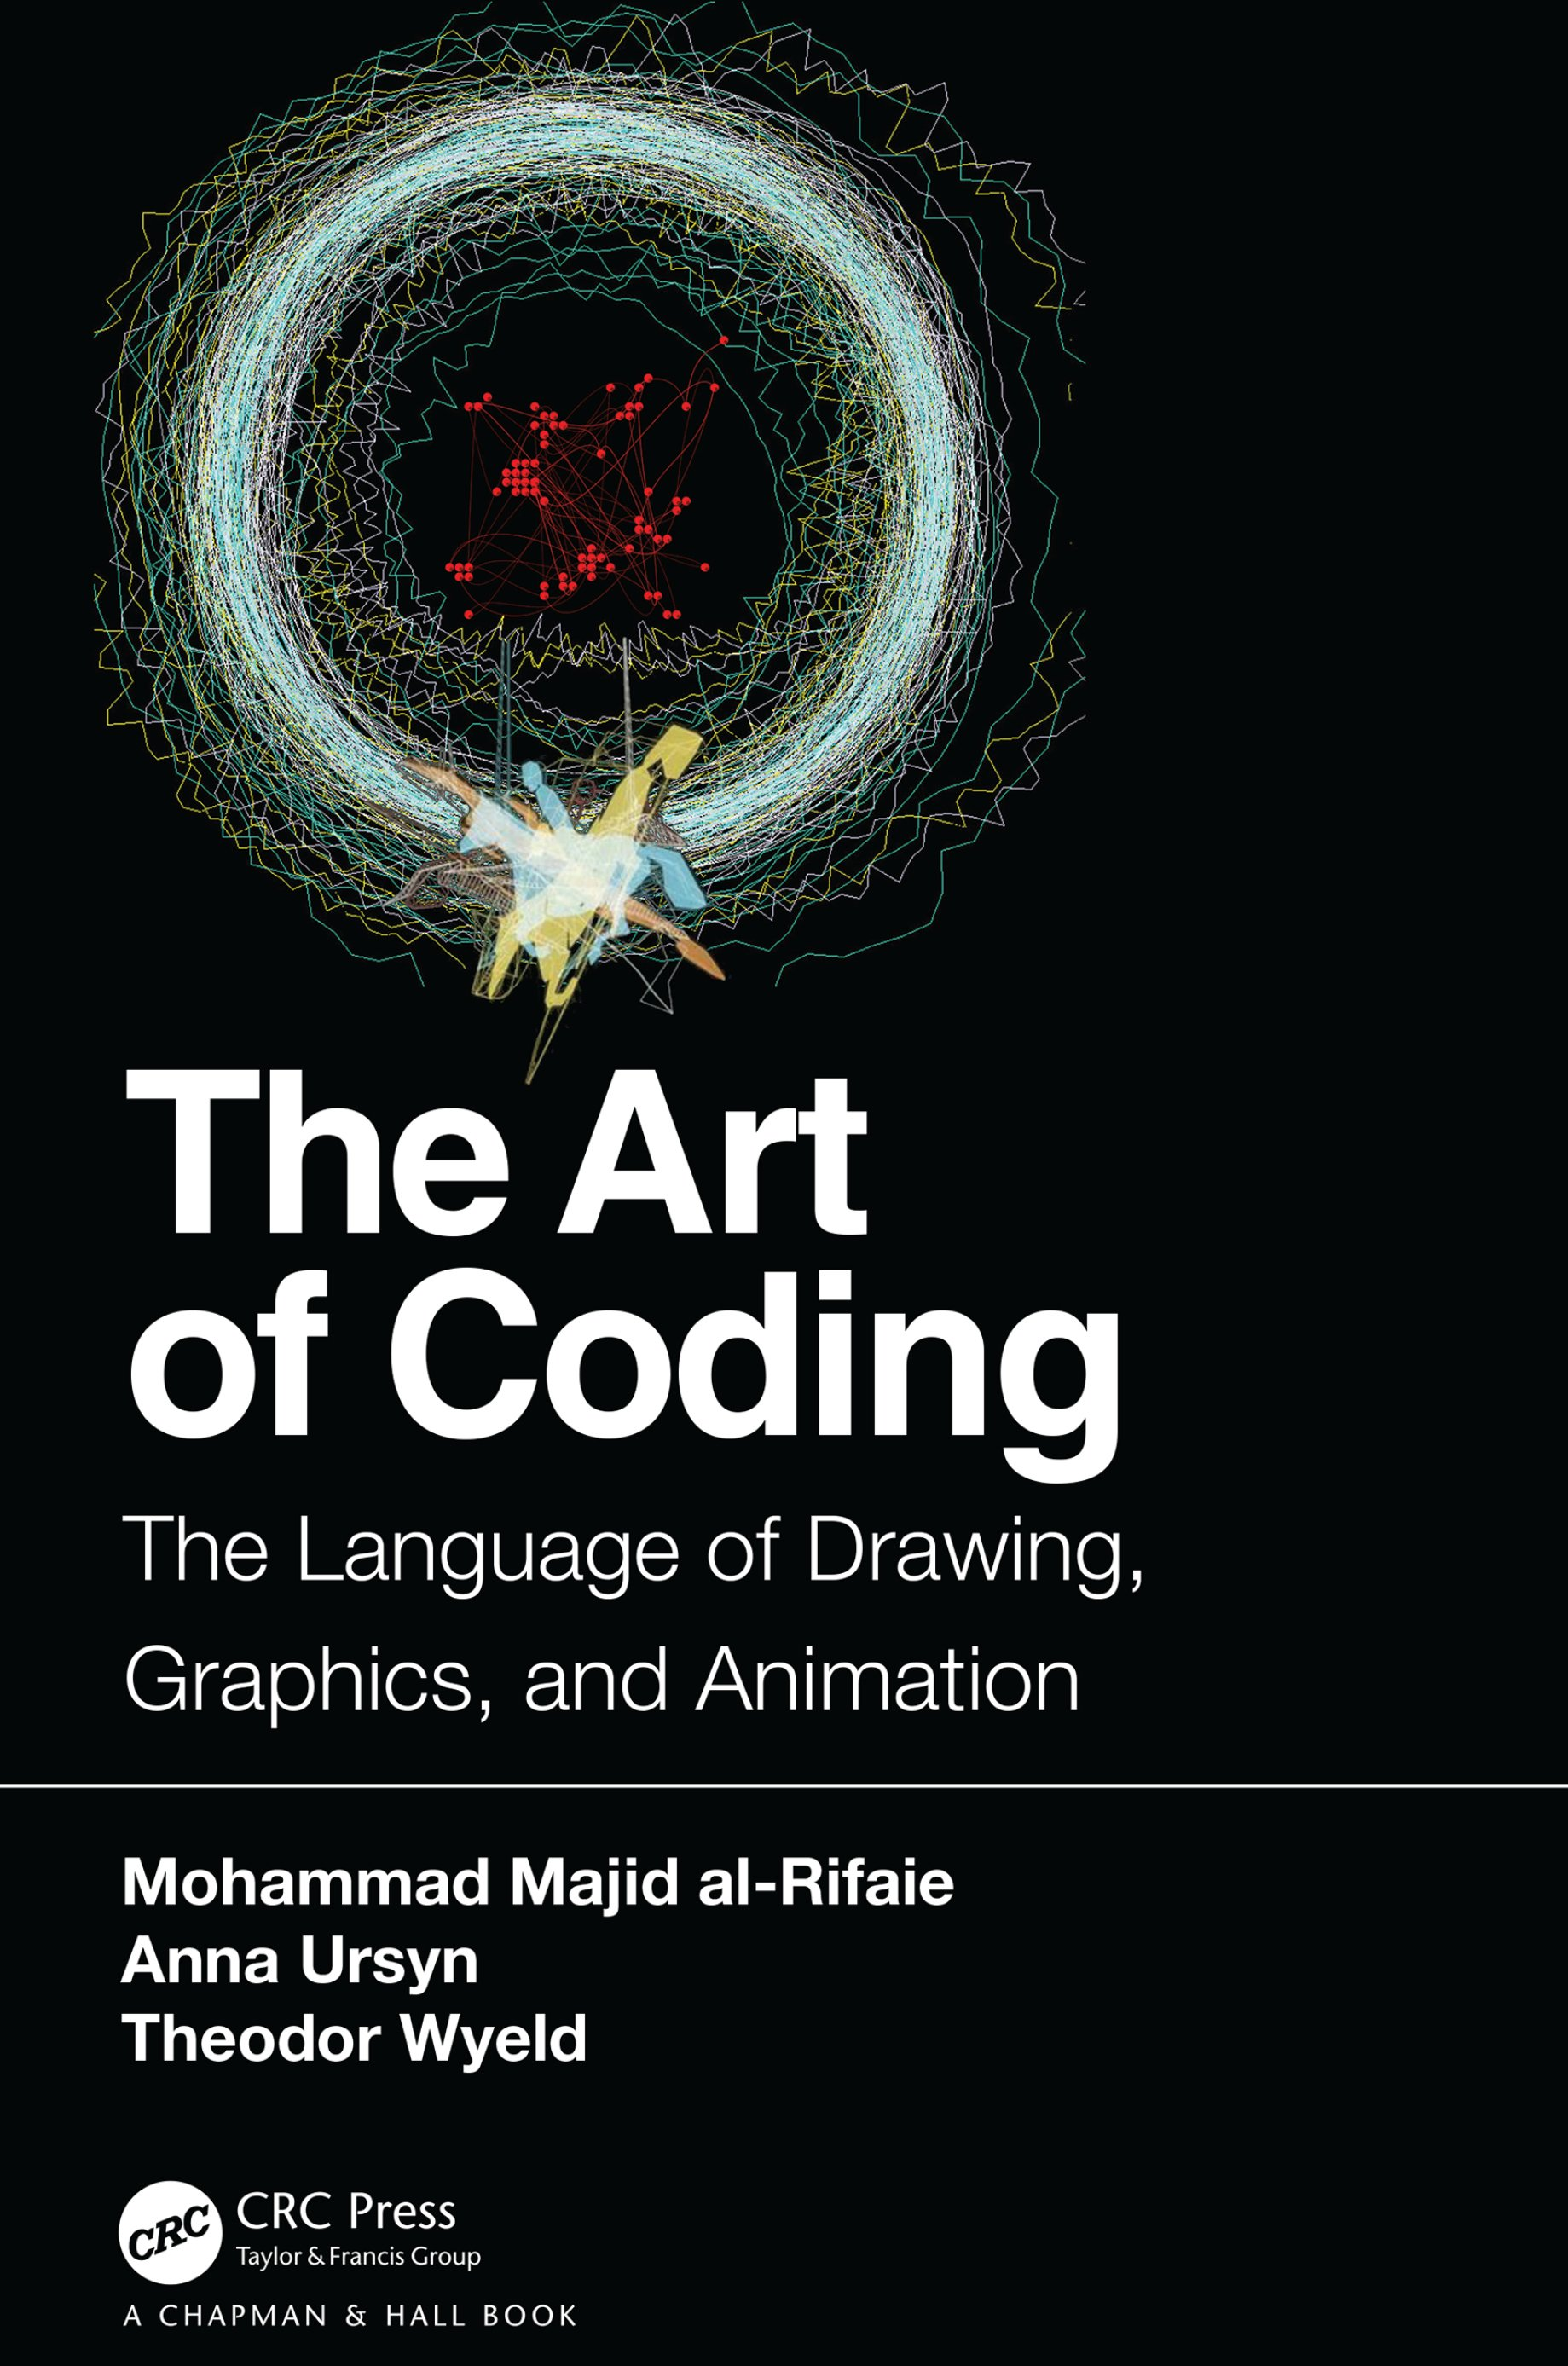 The Art of Coding: The Language of Drawing, Graphics, and Animation book cover